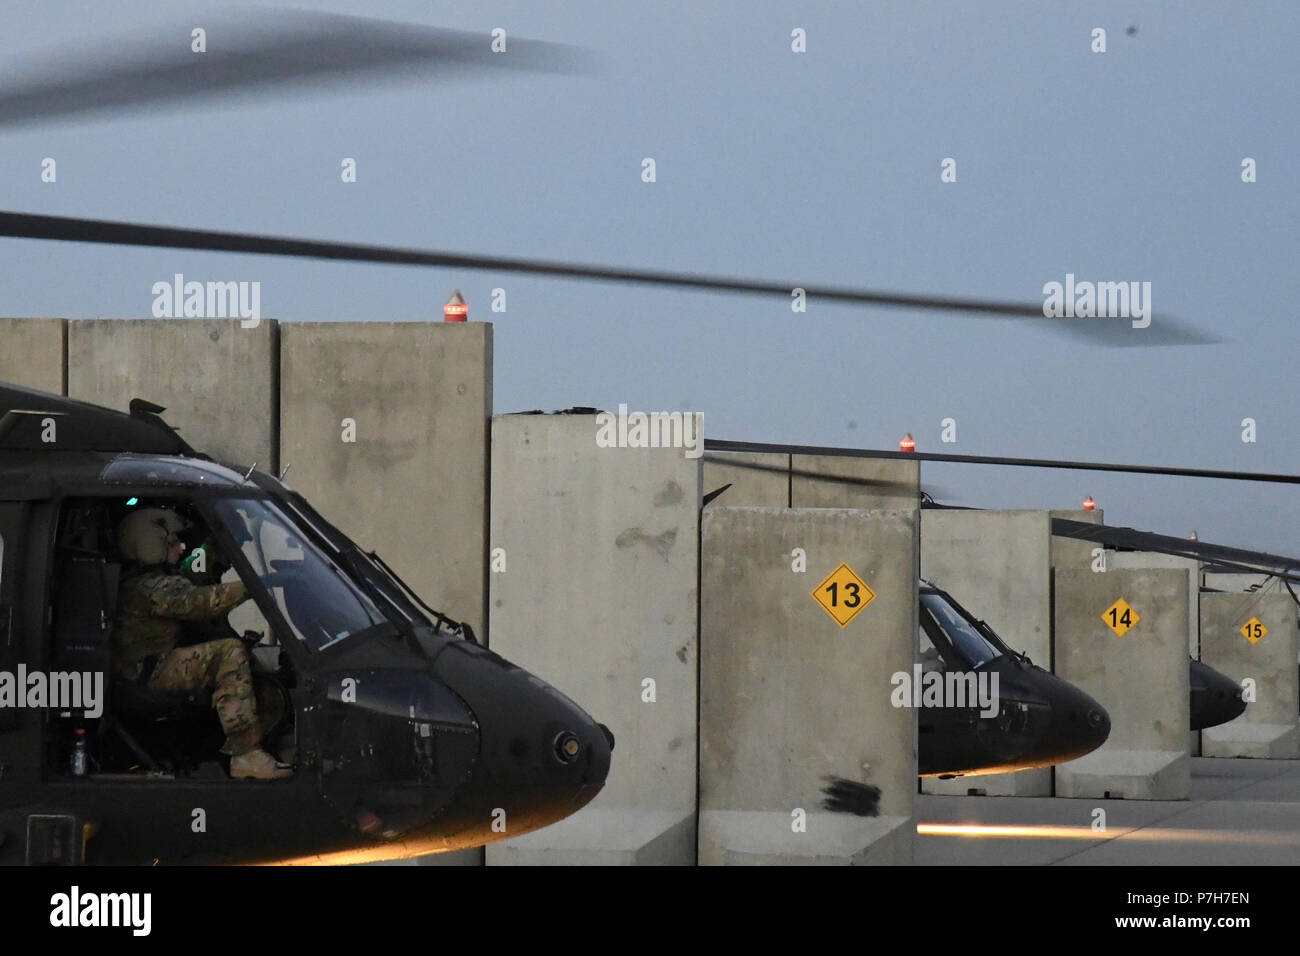 A UH-60 Blackhawk helicopter assigned to Task Force Shadow conducts a pre flight run-up and health indicator test to validate engine performance at Bagram Airfield, July 2. - Stock Image